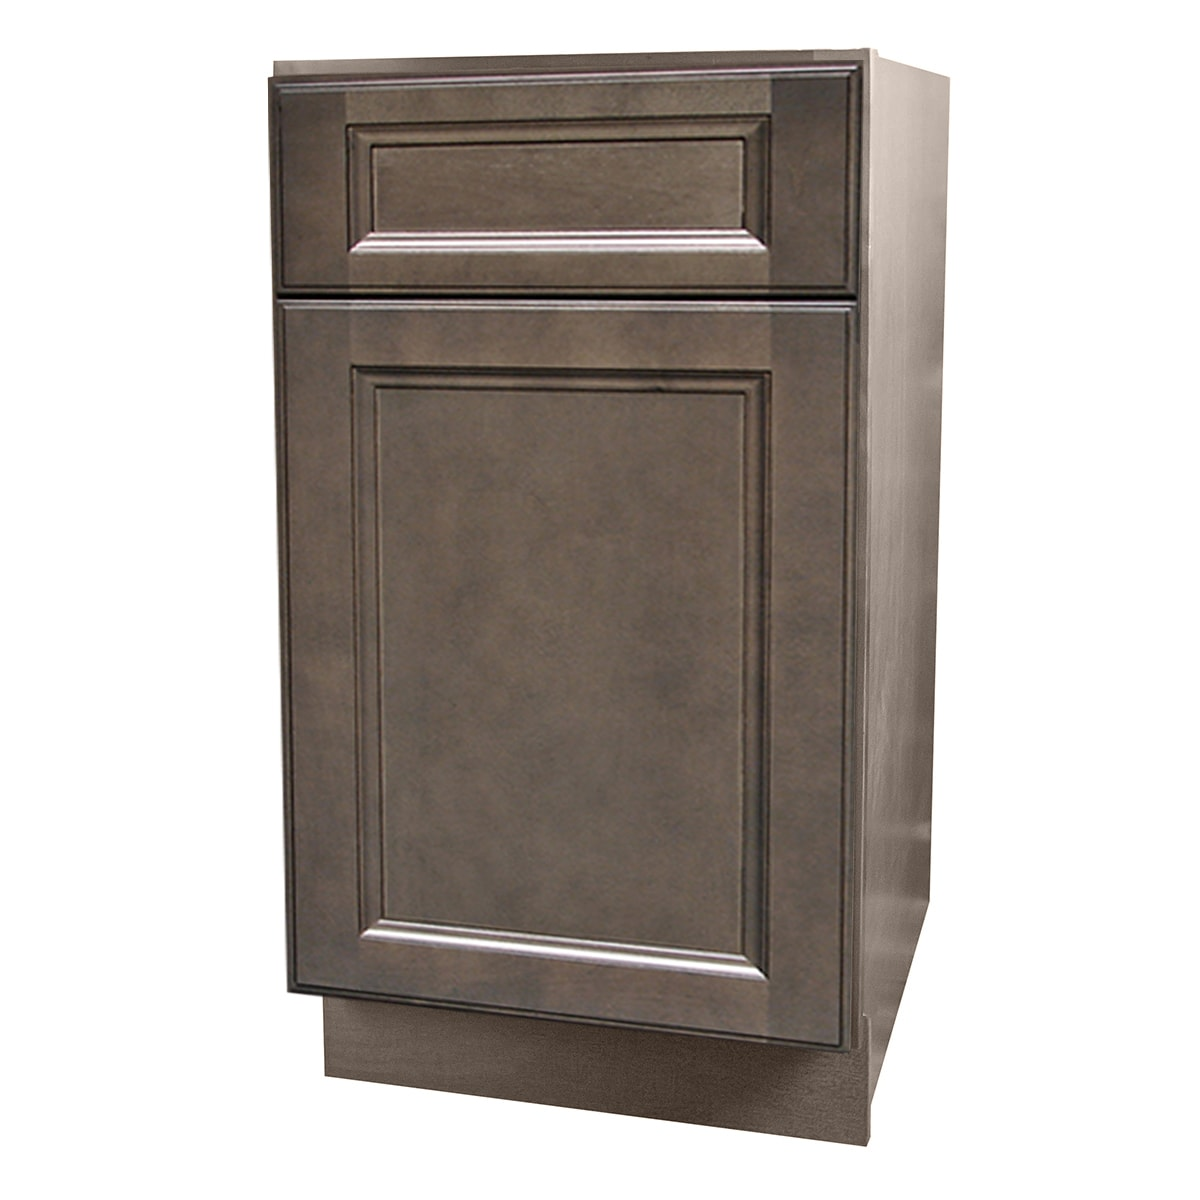 in new clifton discount brandy cabinet for cabinets deals best jersey kitchen hallmark nj york sale